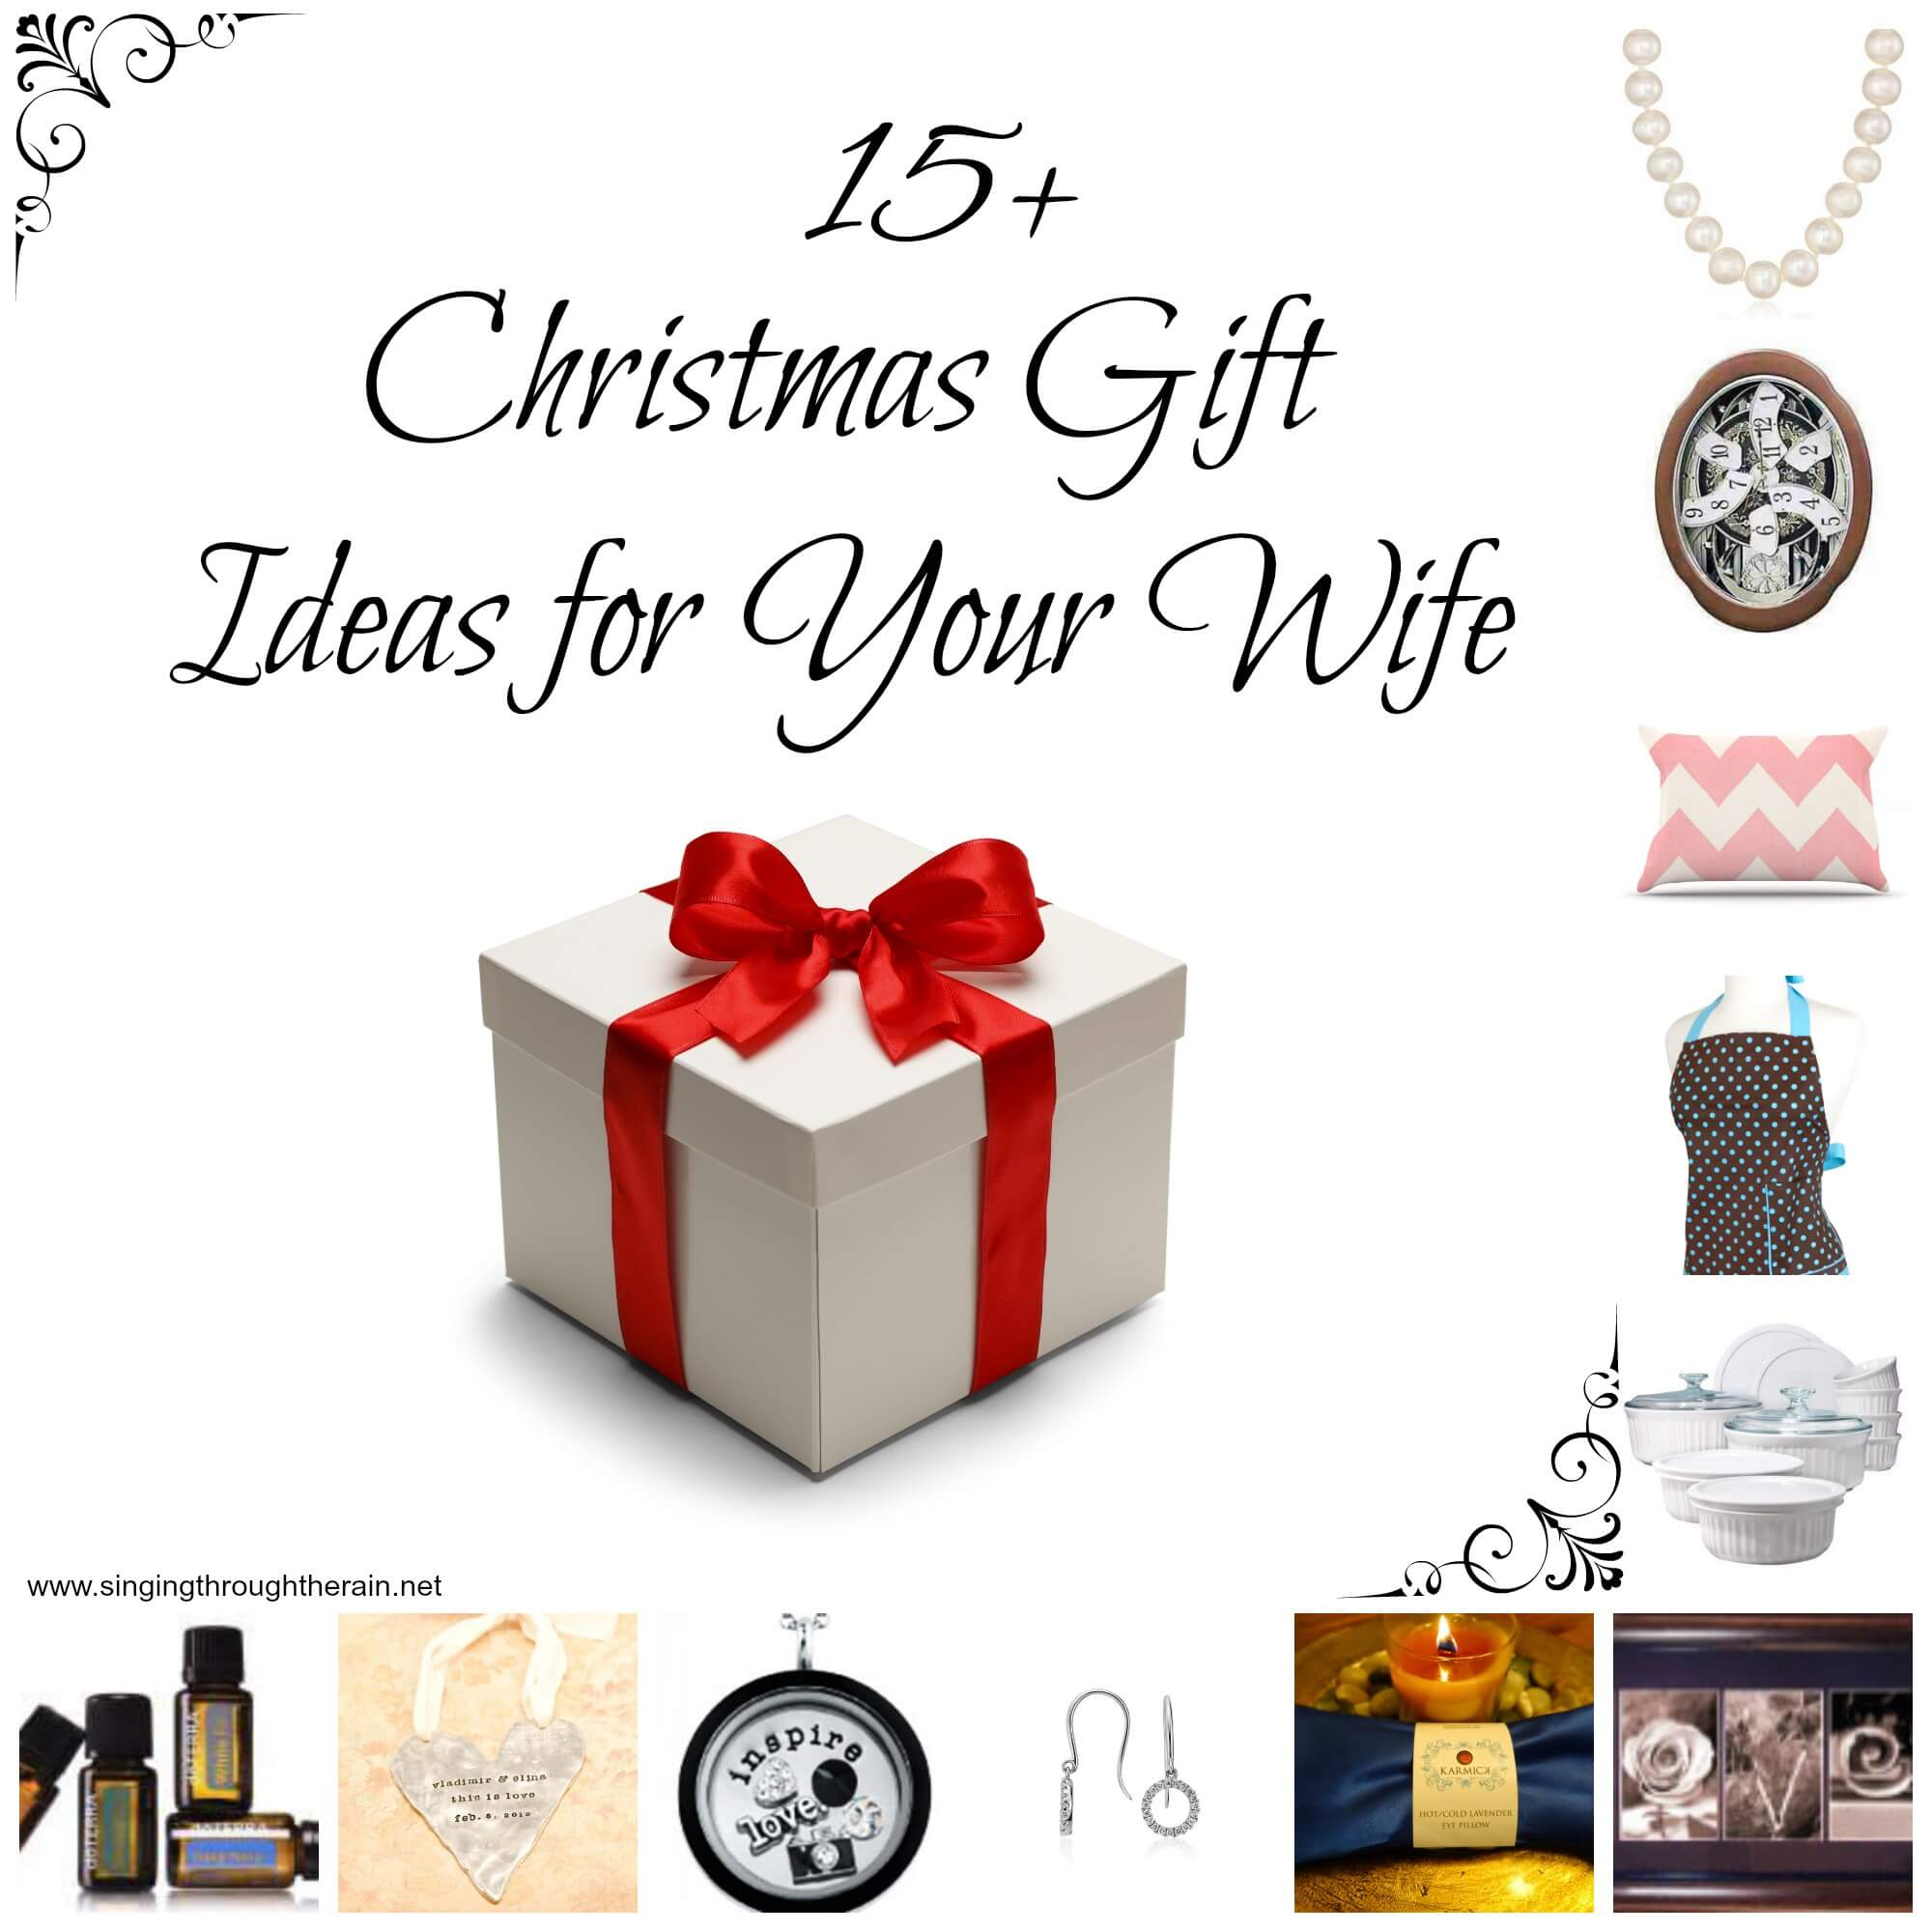 15+ Christmas Gift Ideas for Your Wife | Singing Through the Rain